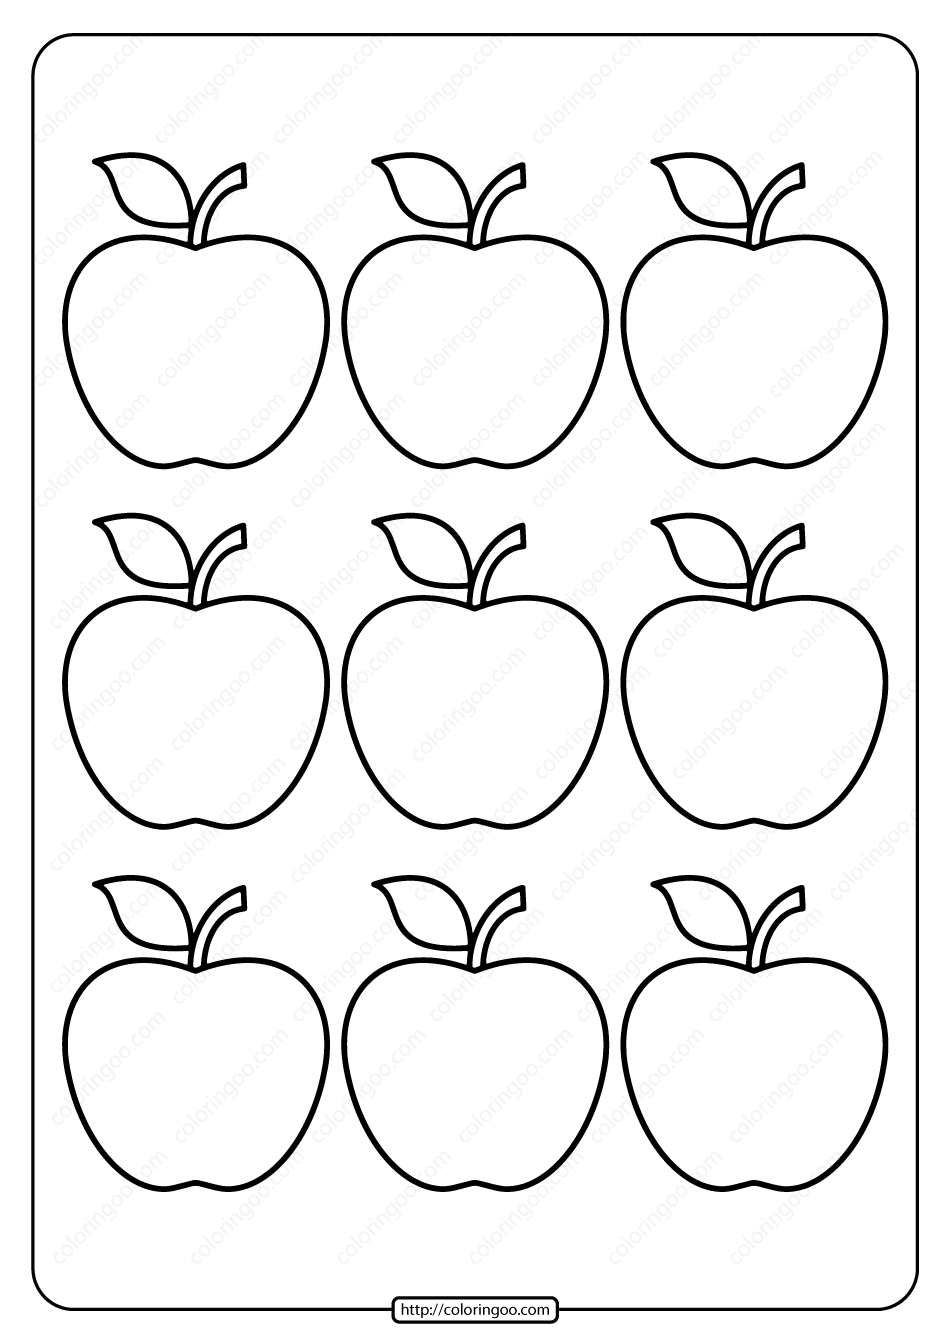 printable apple pictures printable apple templates to make apple crafts for preschool printable pictures apple